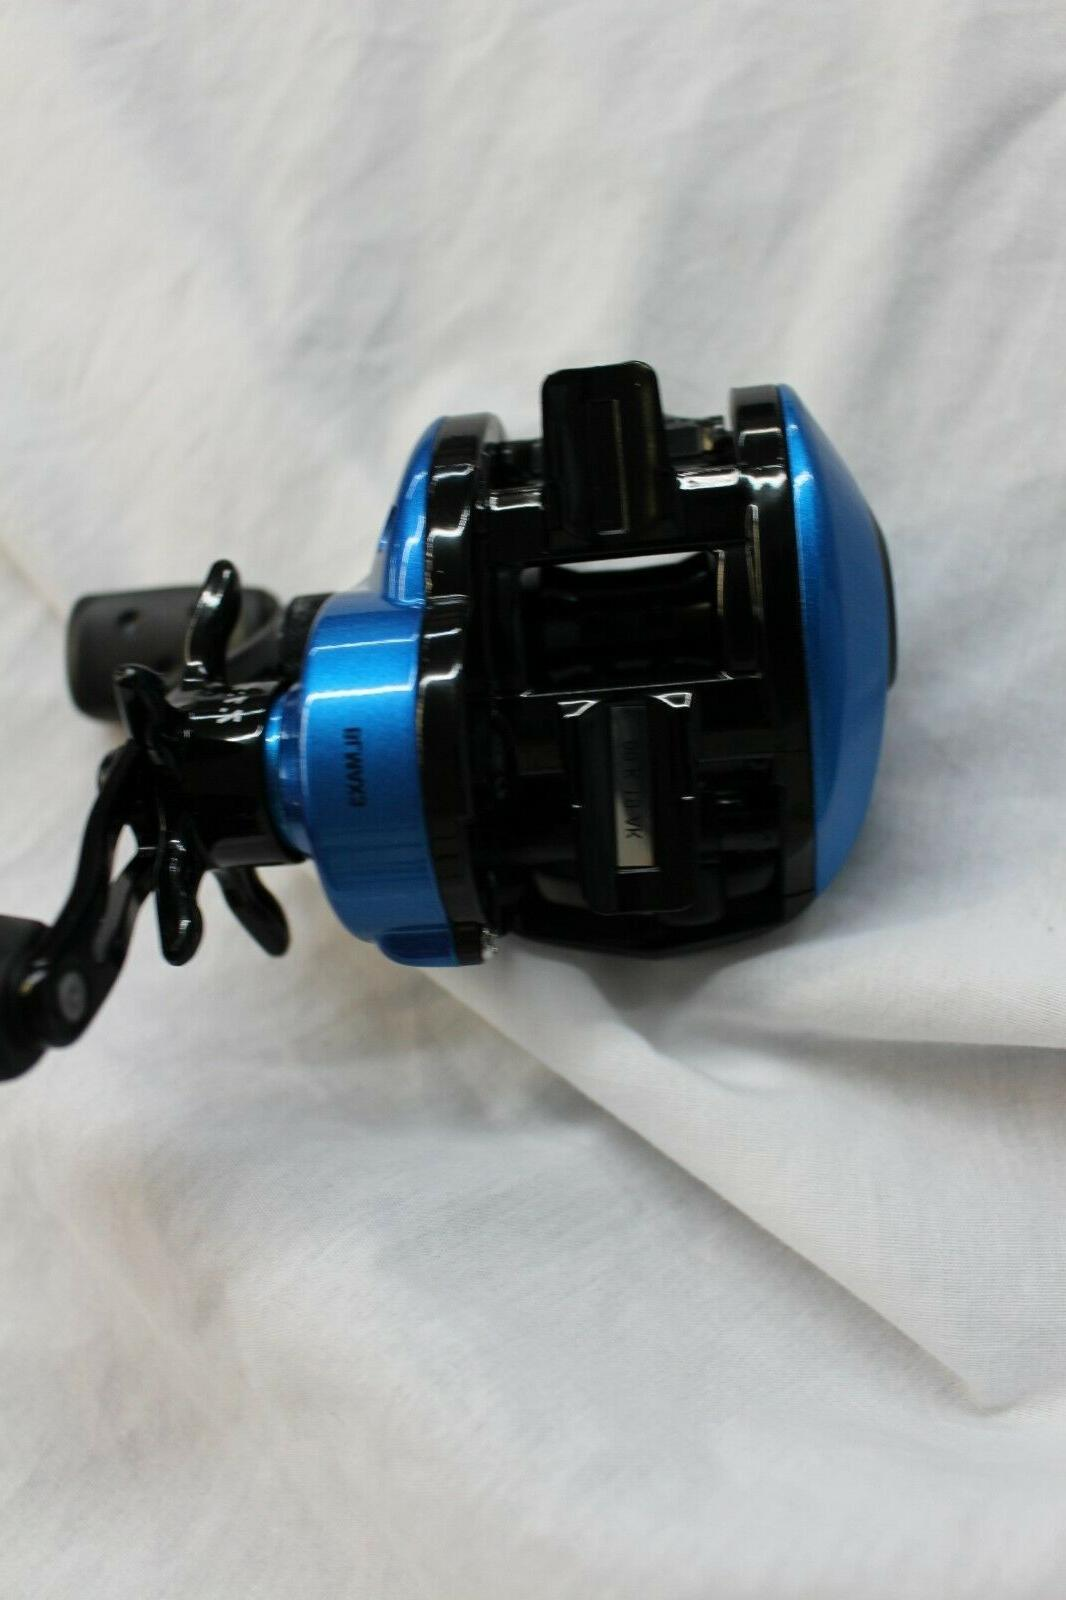 ABU GARCIA BLUE LOW PROFILE RIGHT-HANDED BAITCASTING REEL- BLMAX3